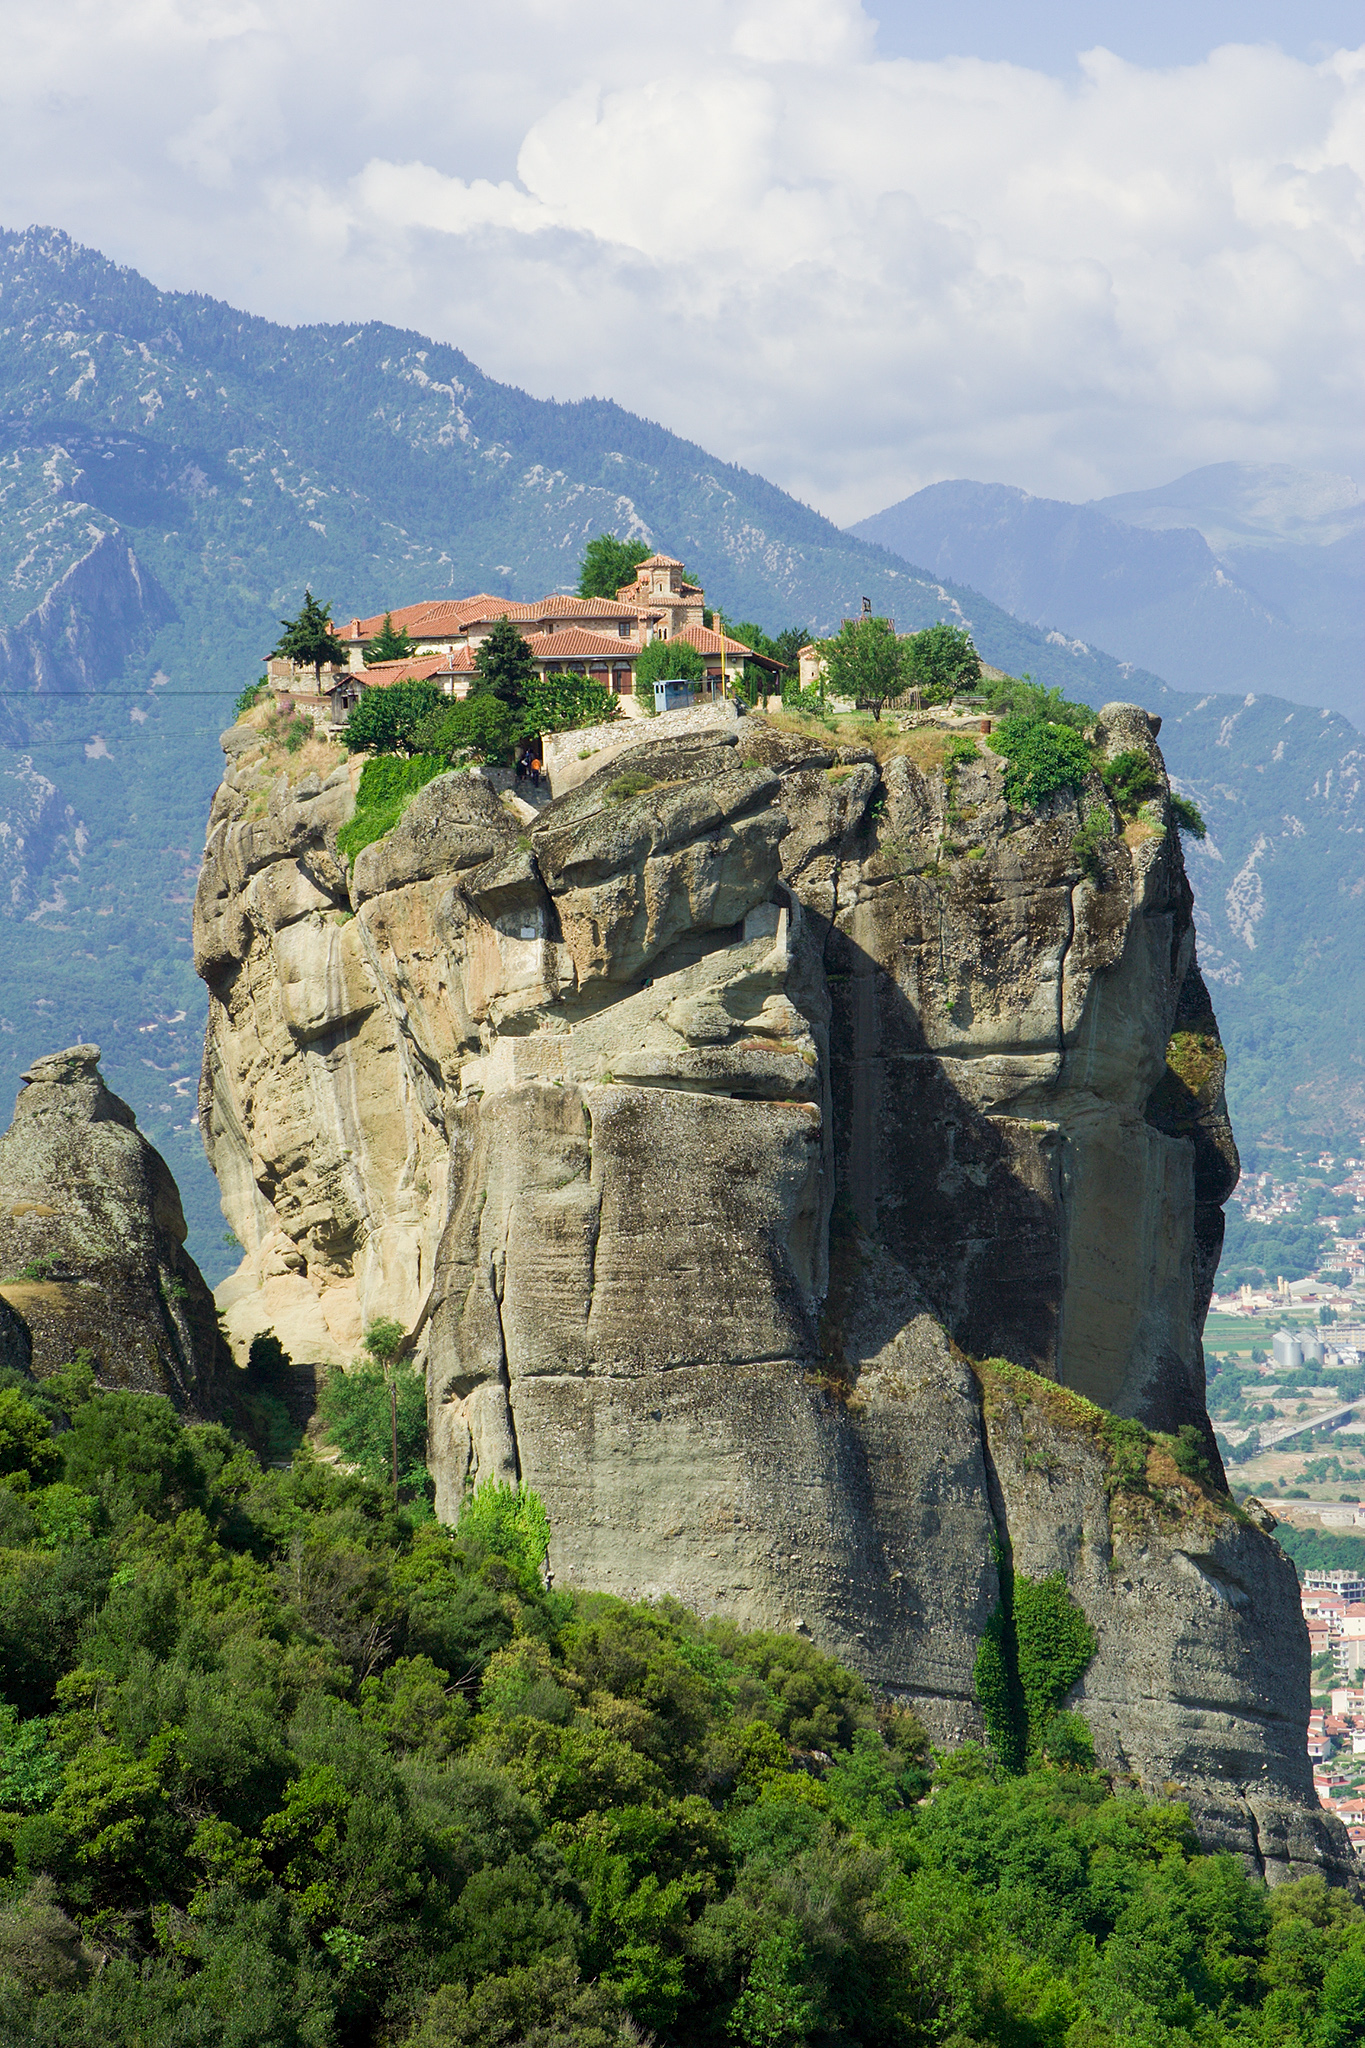 http://upload.wikimedia.org/wikipedia/commons/5/5e/Meteora_Agios_Triadas_IMG_7632.jpg